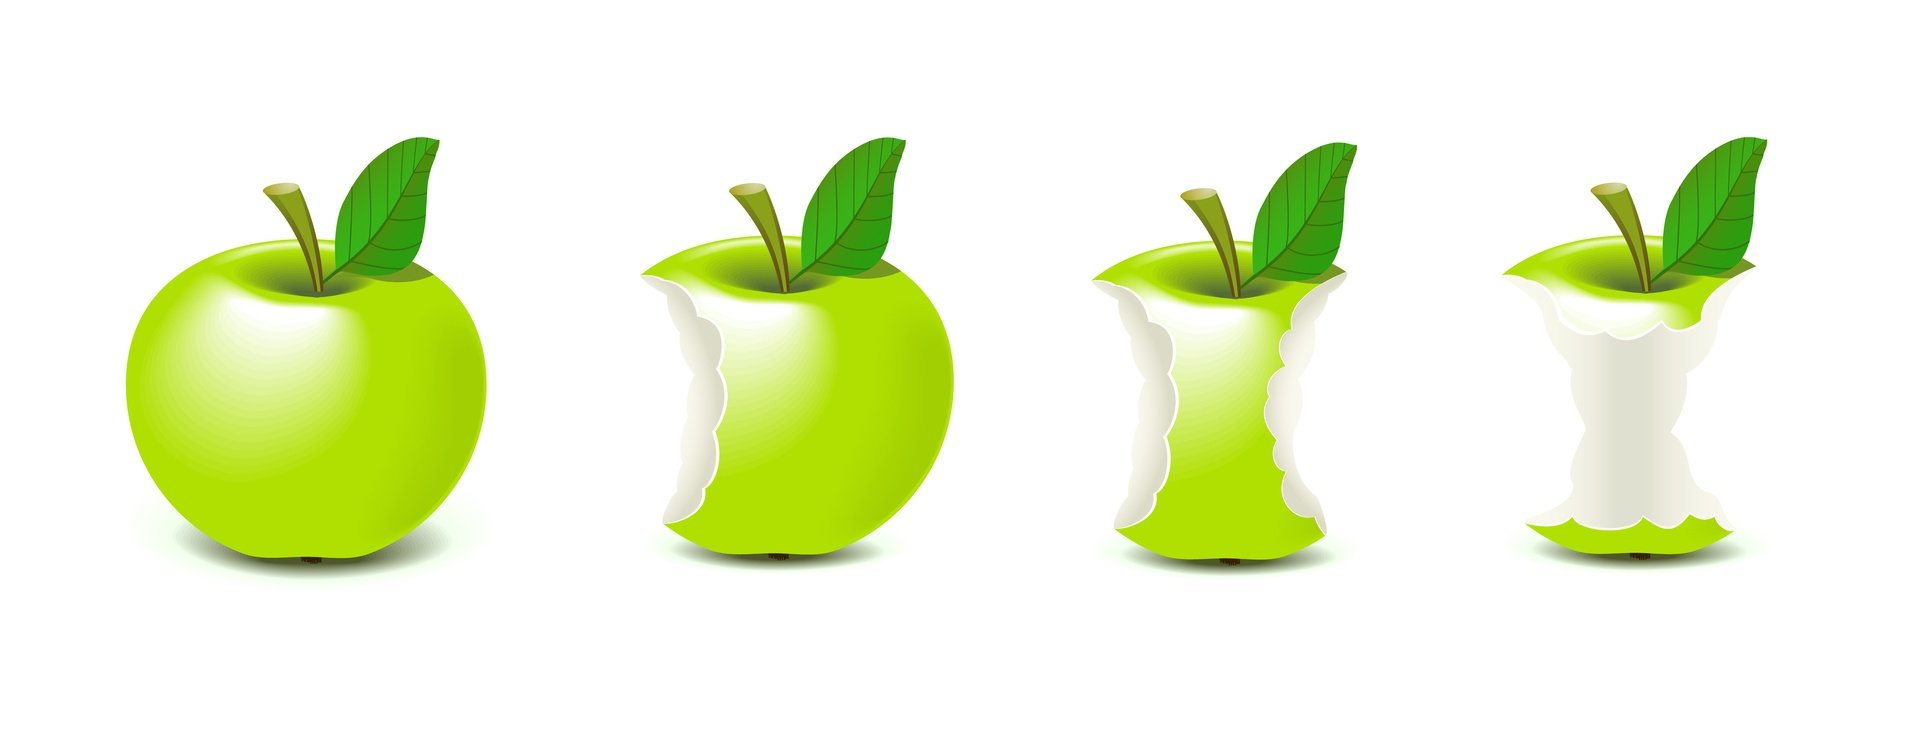 is bite sized learning the future of elearning apple clipart for teachers apple clipart free